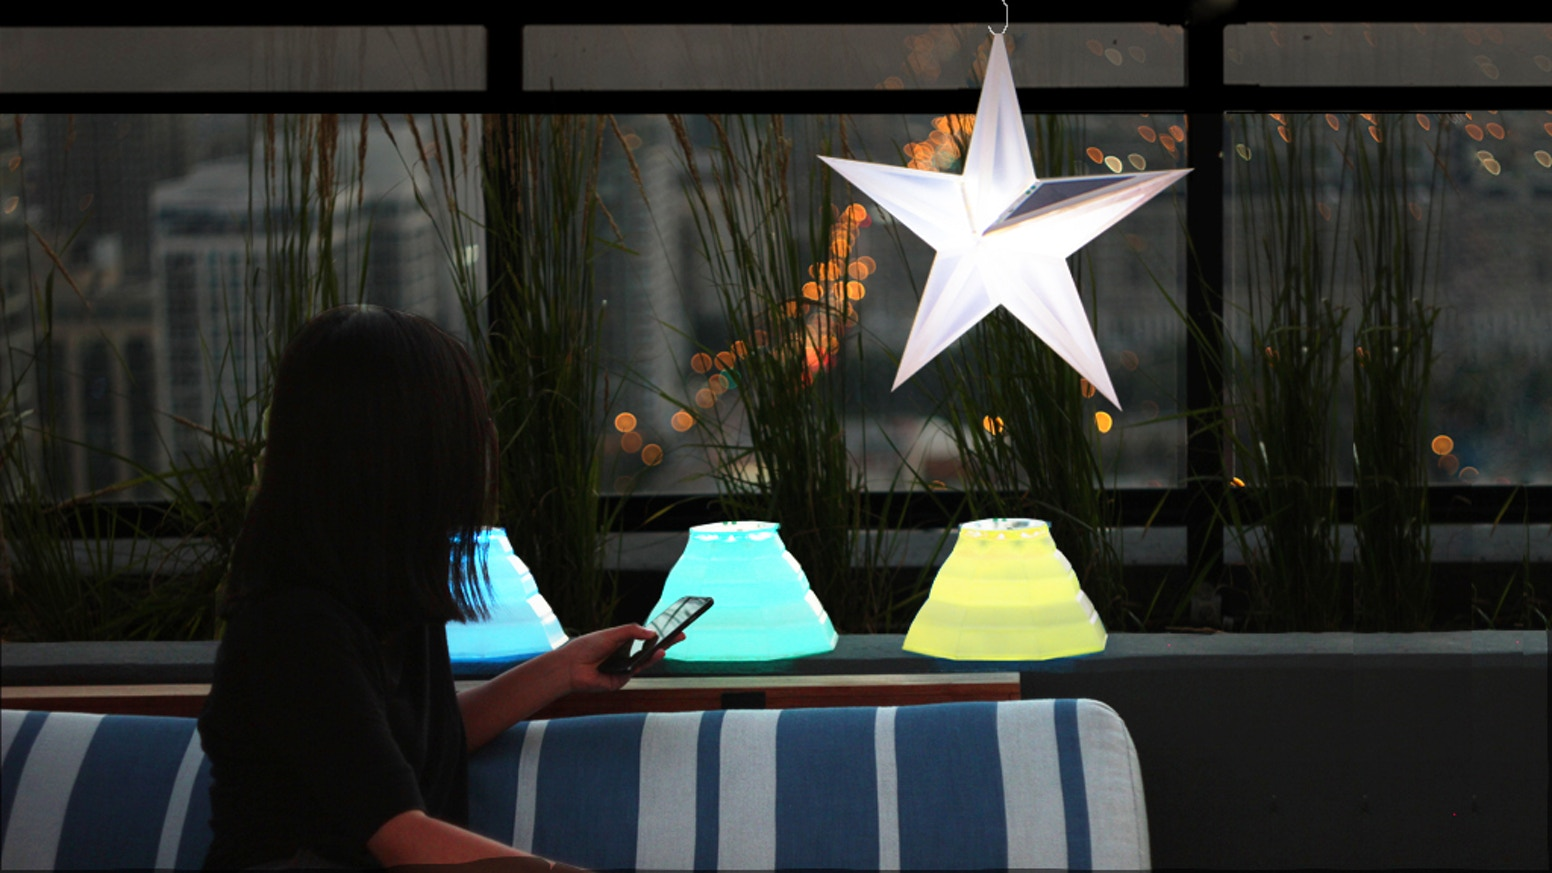 Transformable Origami Inspired Solar Ed Lanterns For Outdoor Use Control By